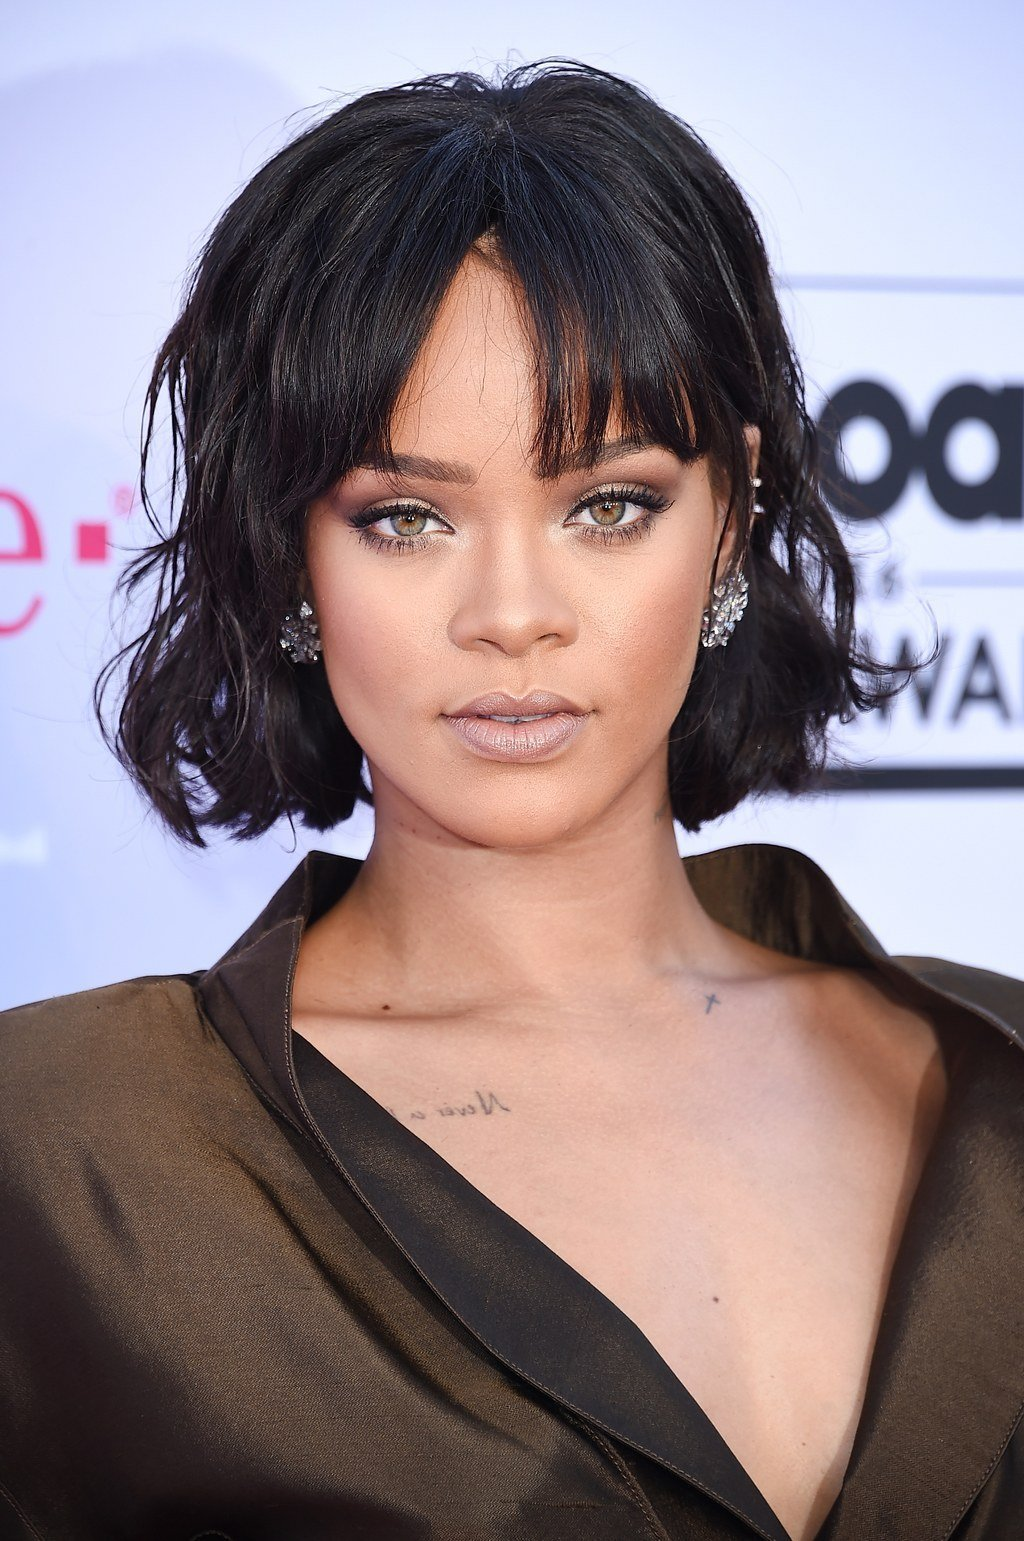 The Best Rihanna Short Hair See Her Cute New Bangs And Bob Glamour Pictures